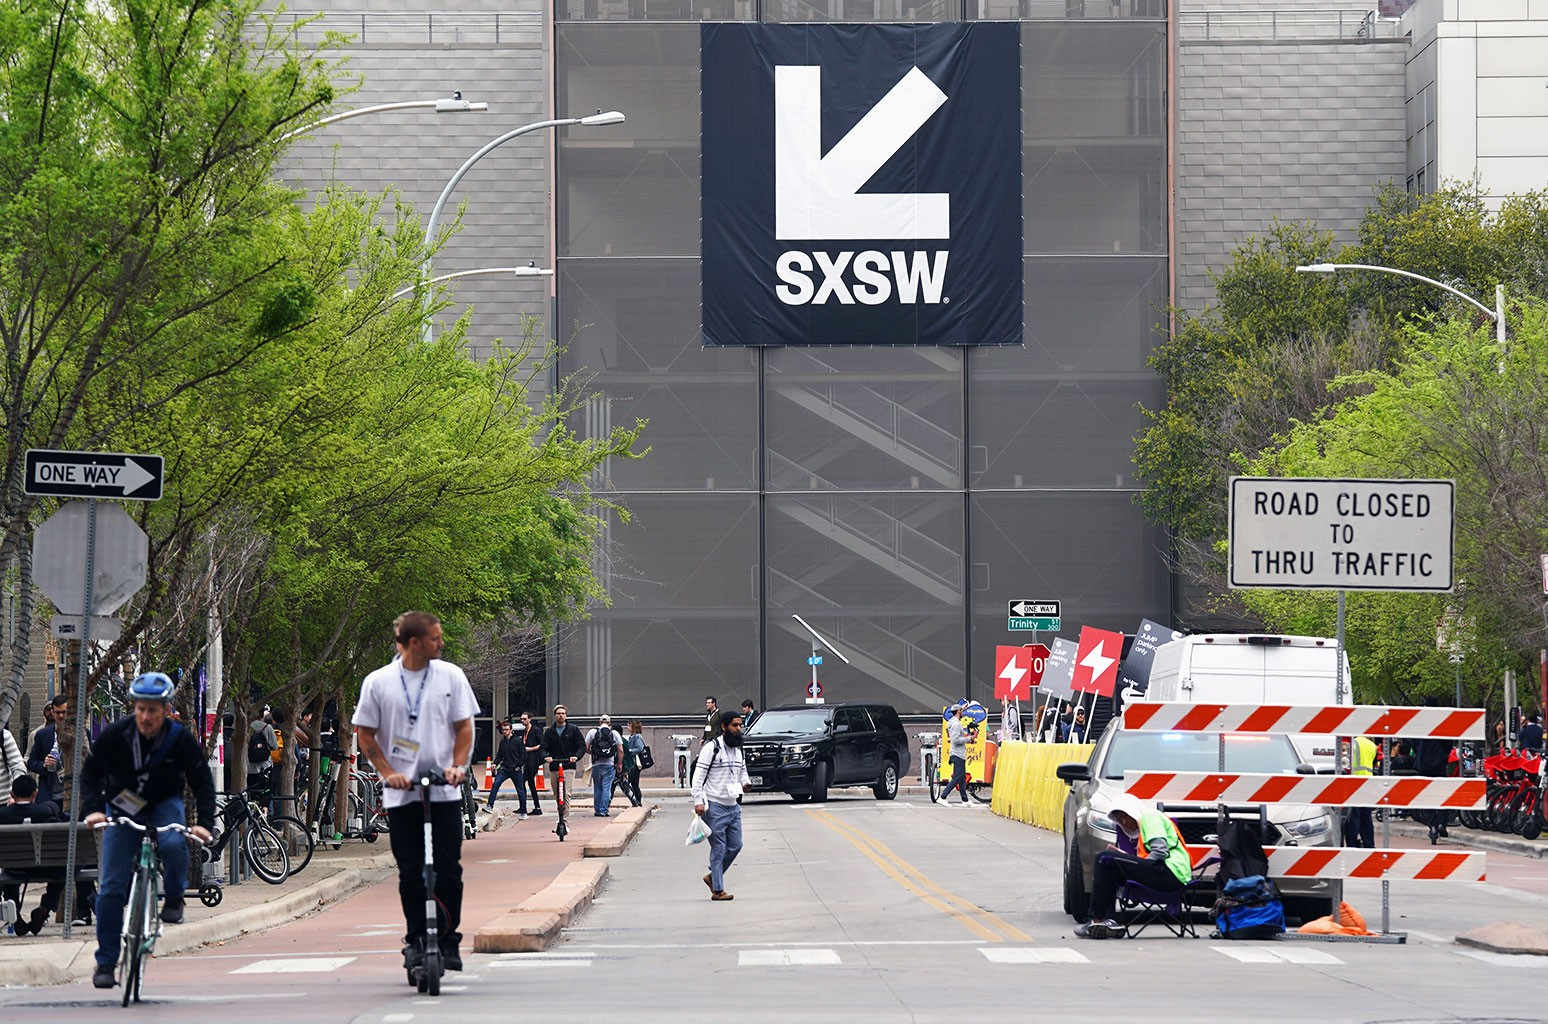 SXSW Coronavirus Cancellation a 'Hard Pill to Swallow' for Artists & Execs Missing Out